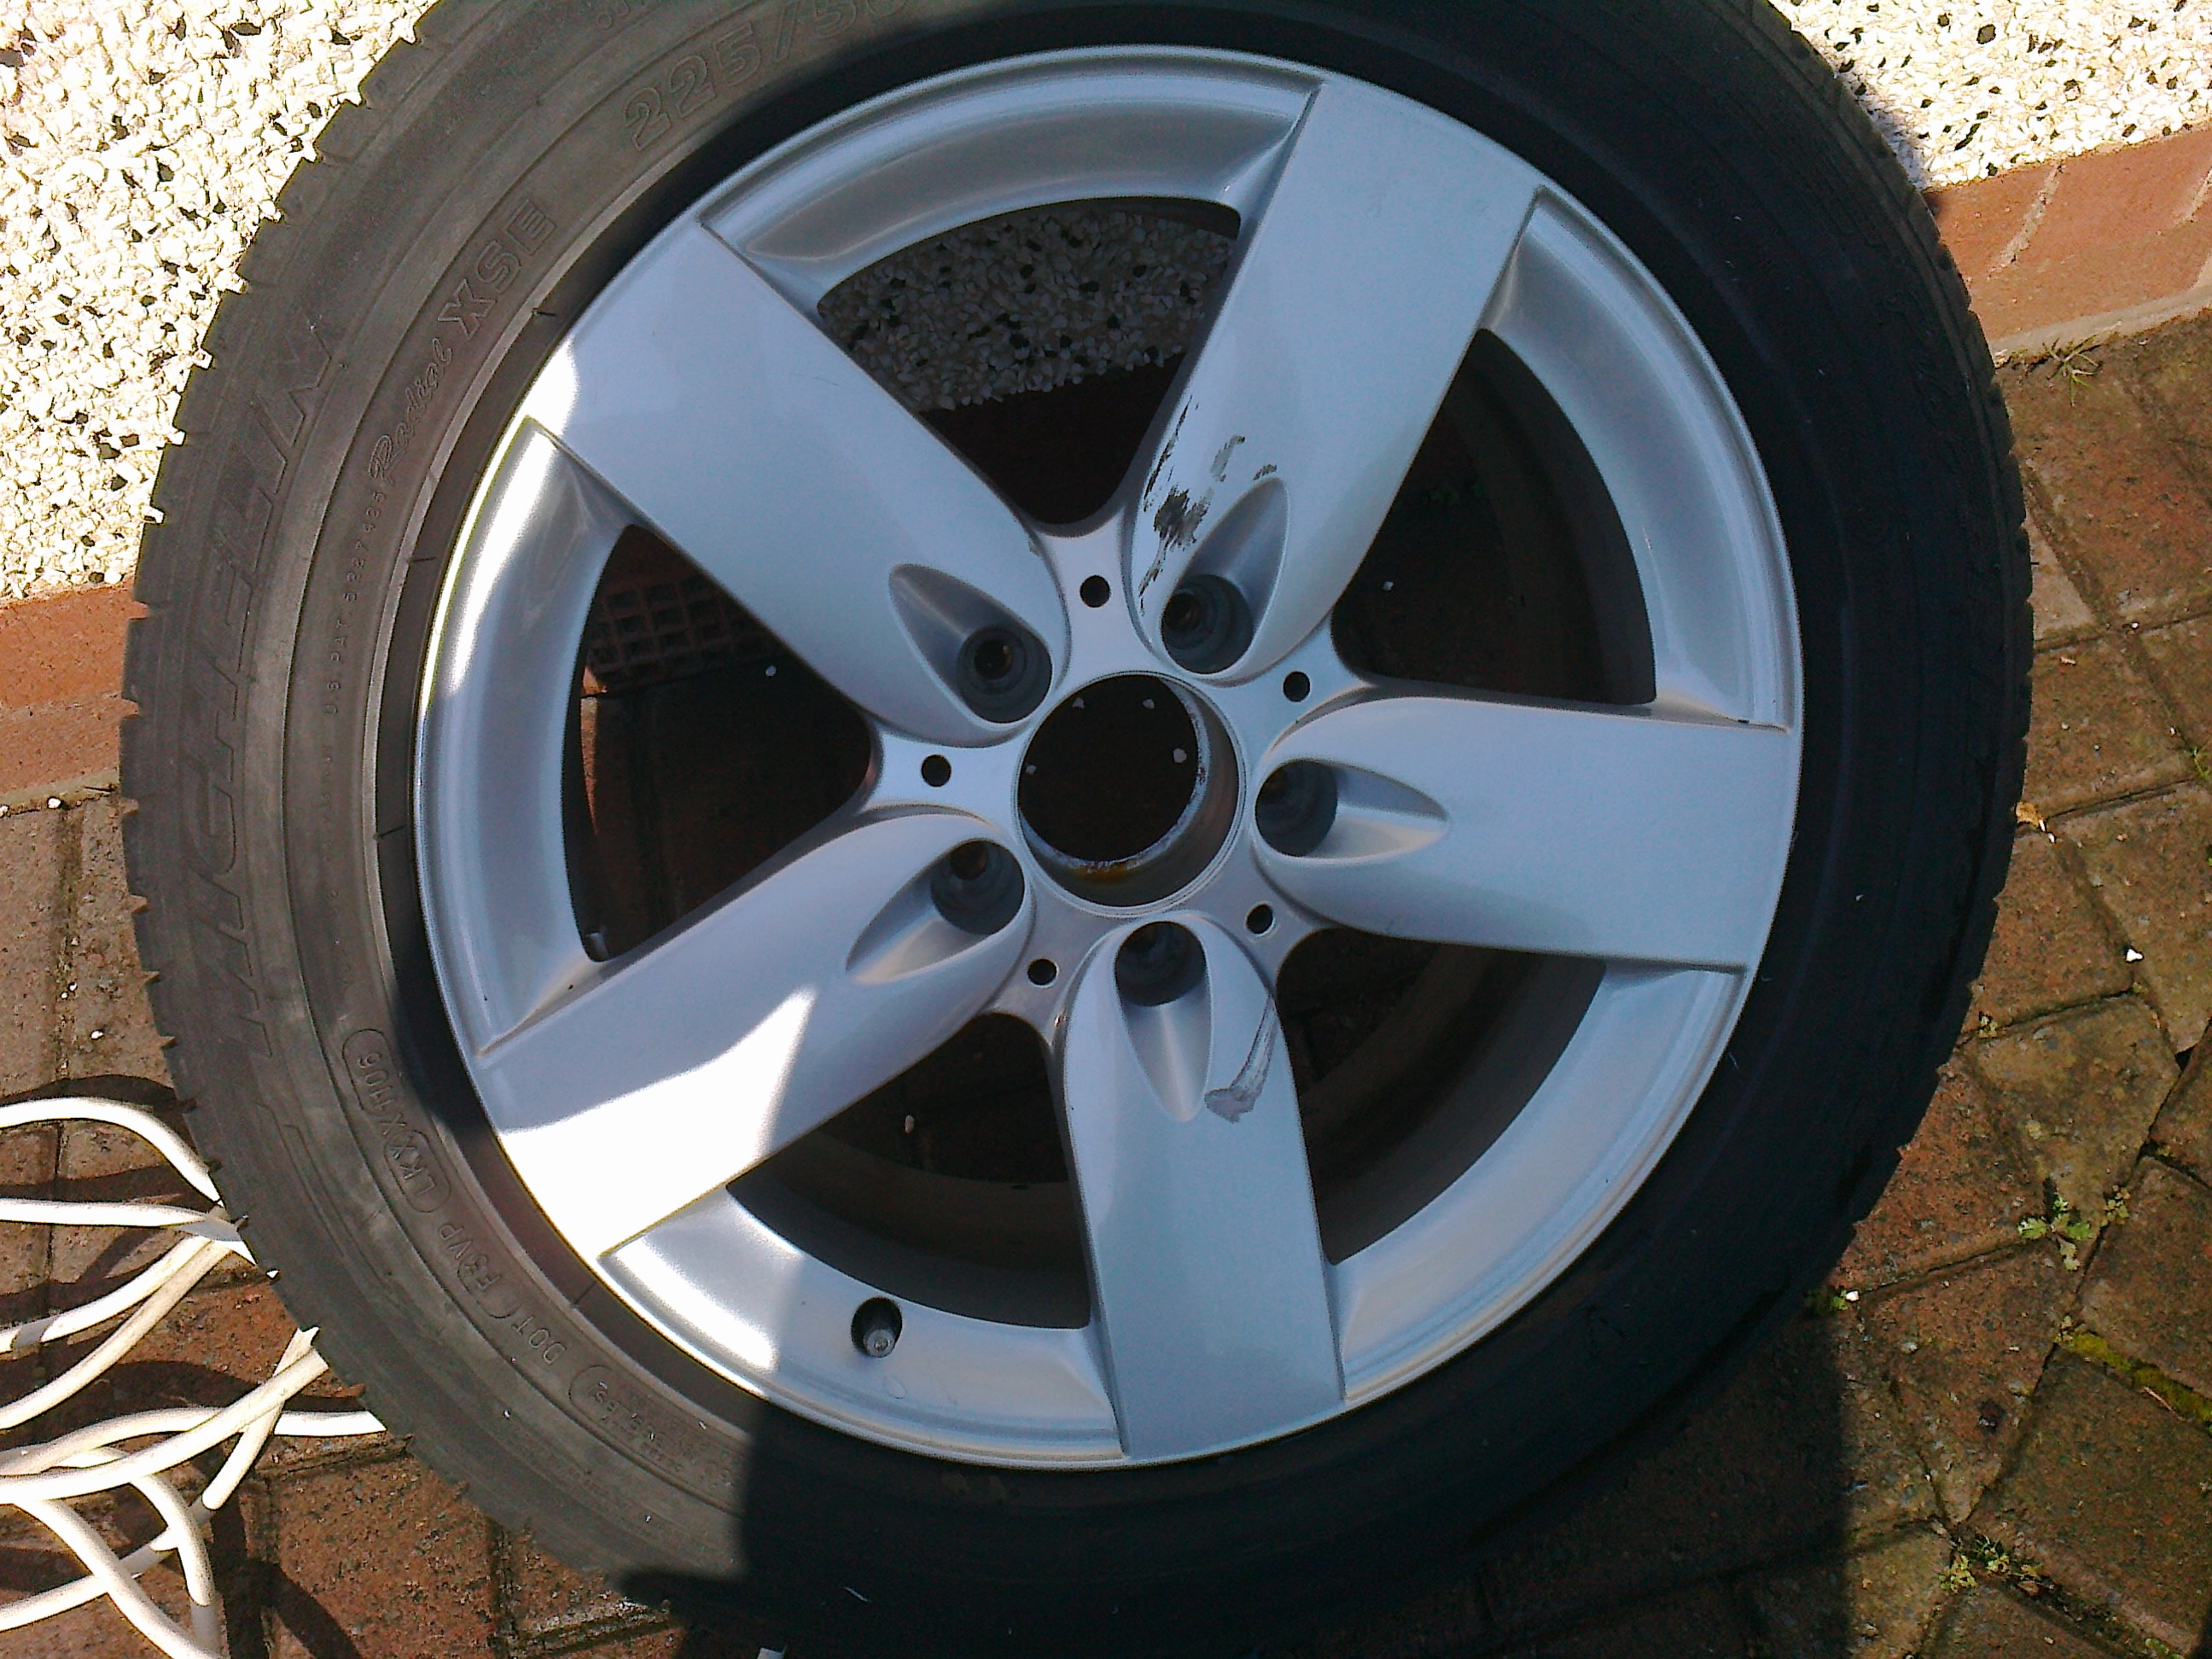 repair-dameg-on-painted-wheel-on-the-face-of-alloy